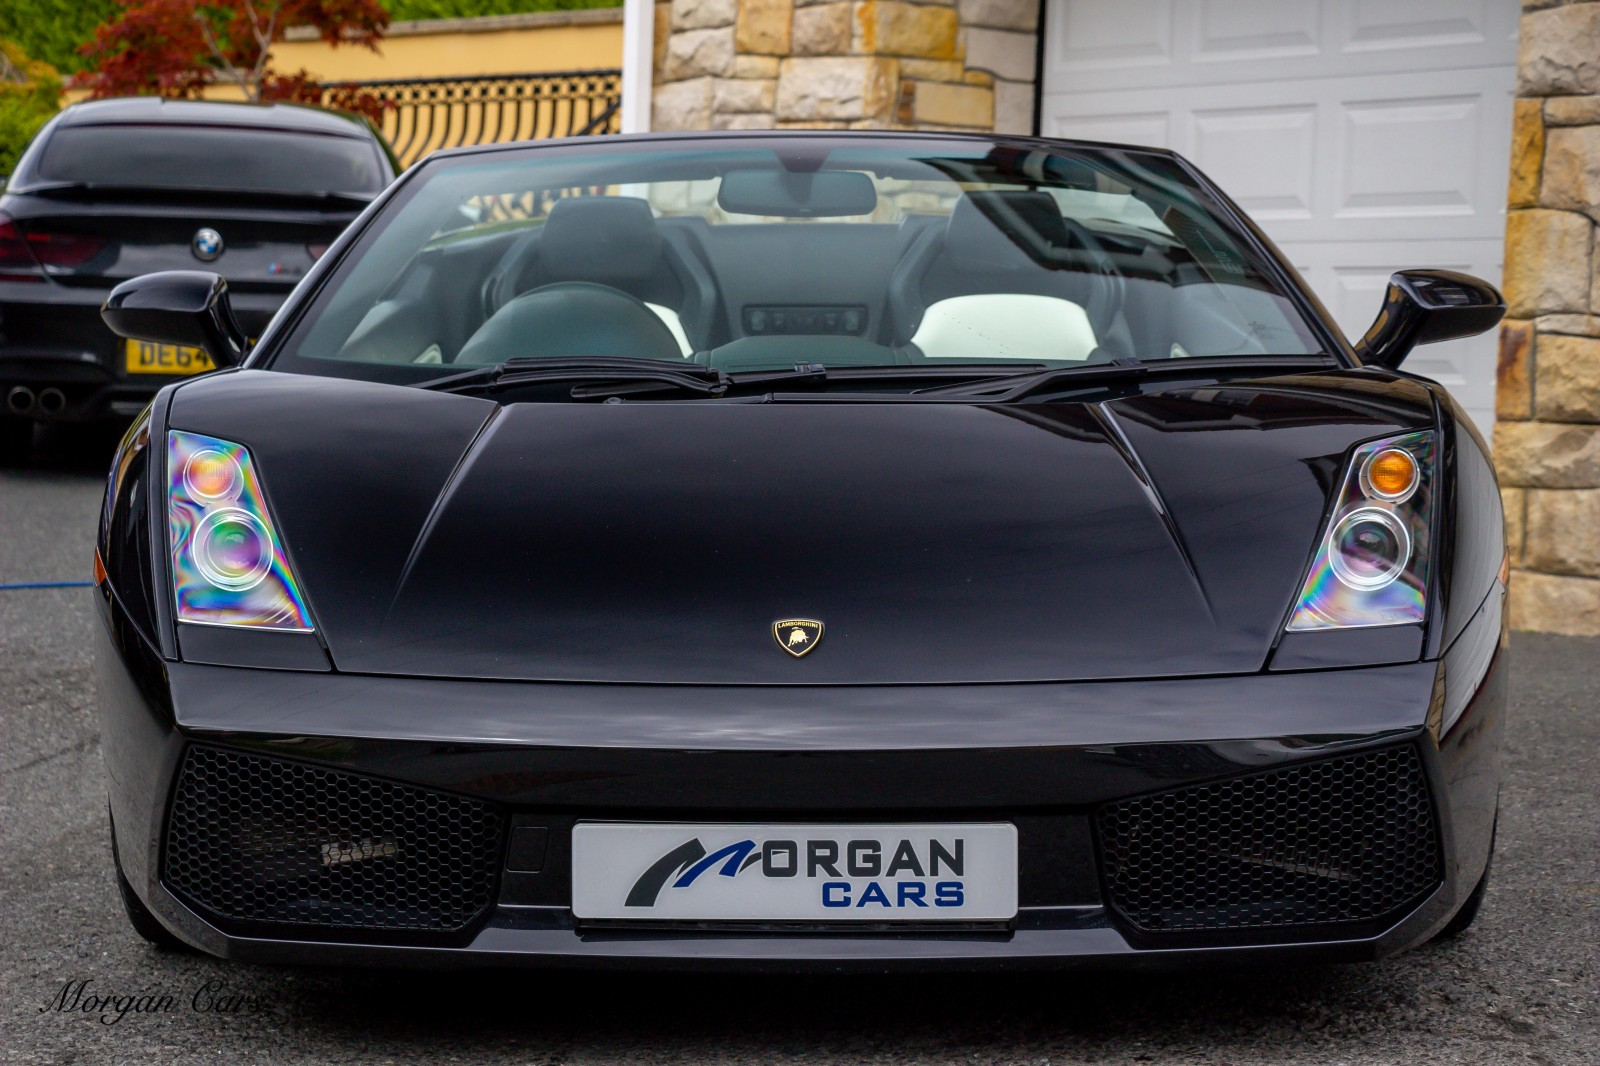 2006 Lamborghini Gallardo V10 5.0 CONVERTIBLE Petrol Manual – Morgan Cars 9 Mound Road, Warrenpoint, Newry BT34 3LW, UK full